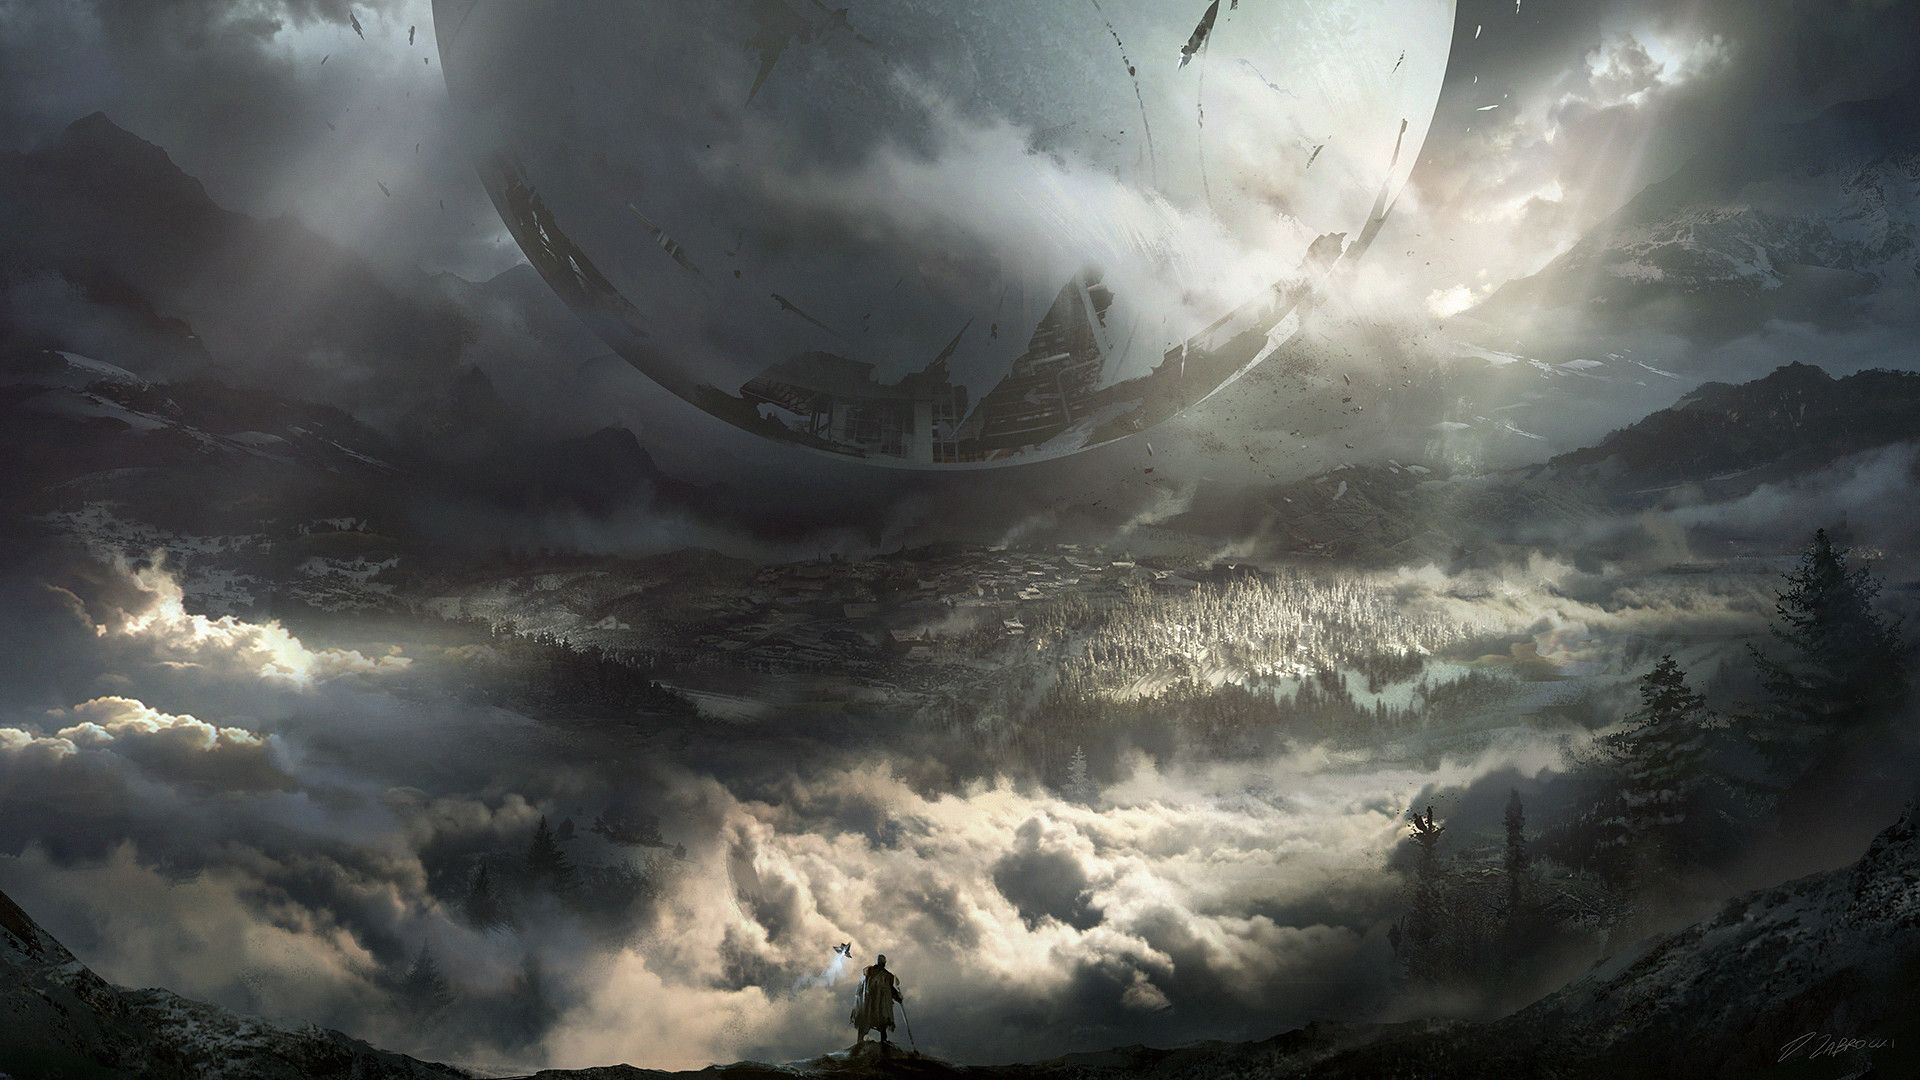 Some Of My Favorite Destiny 2 Wallpapers From The Recent Concept Art Release And The E3 Conference Space Post Concept Art World Destiny Backgrounds Concept Art